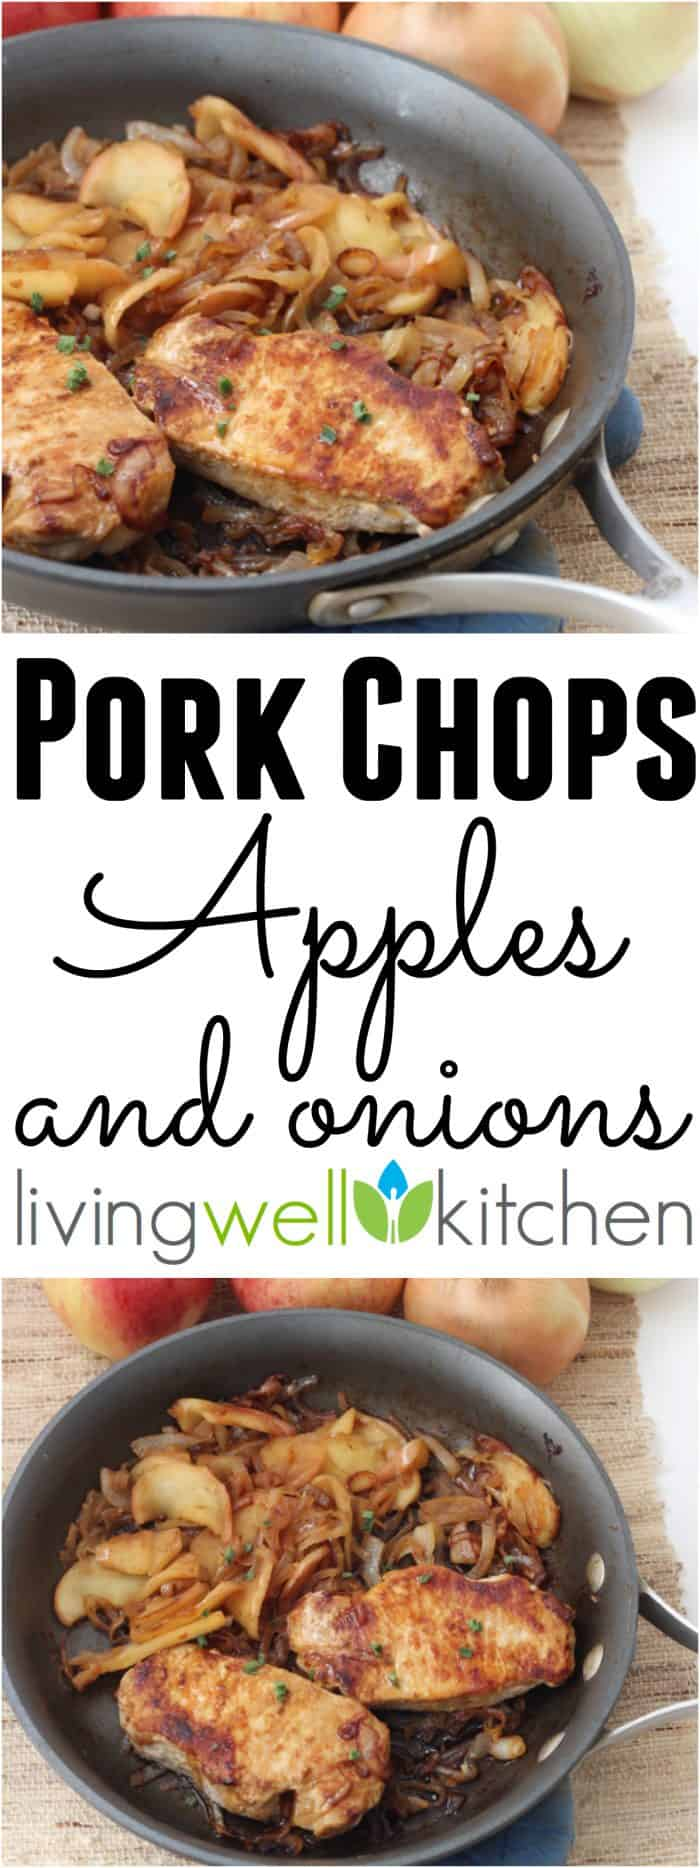 An Easy One Skillet Meal That Packs In The Fall Flavor With Sweet Caramelized Onions And Save Pork Chops